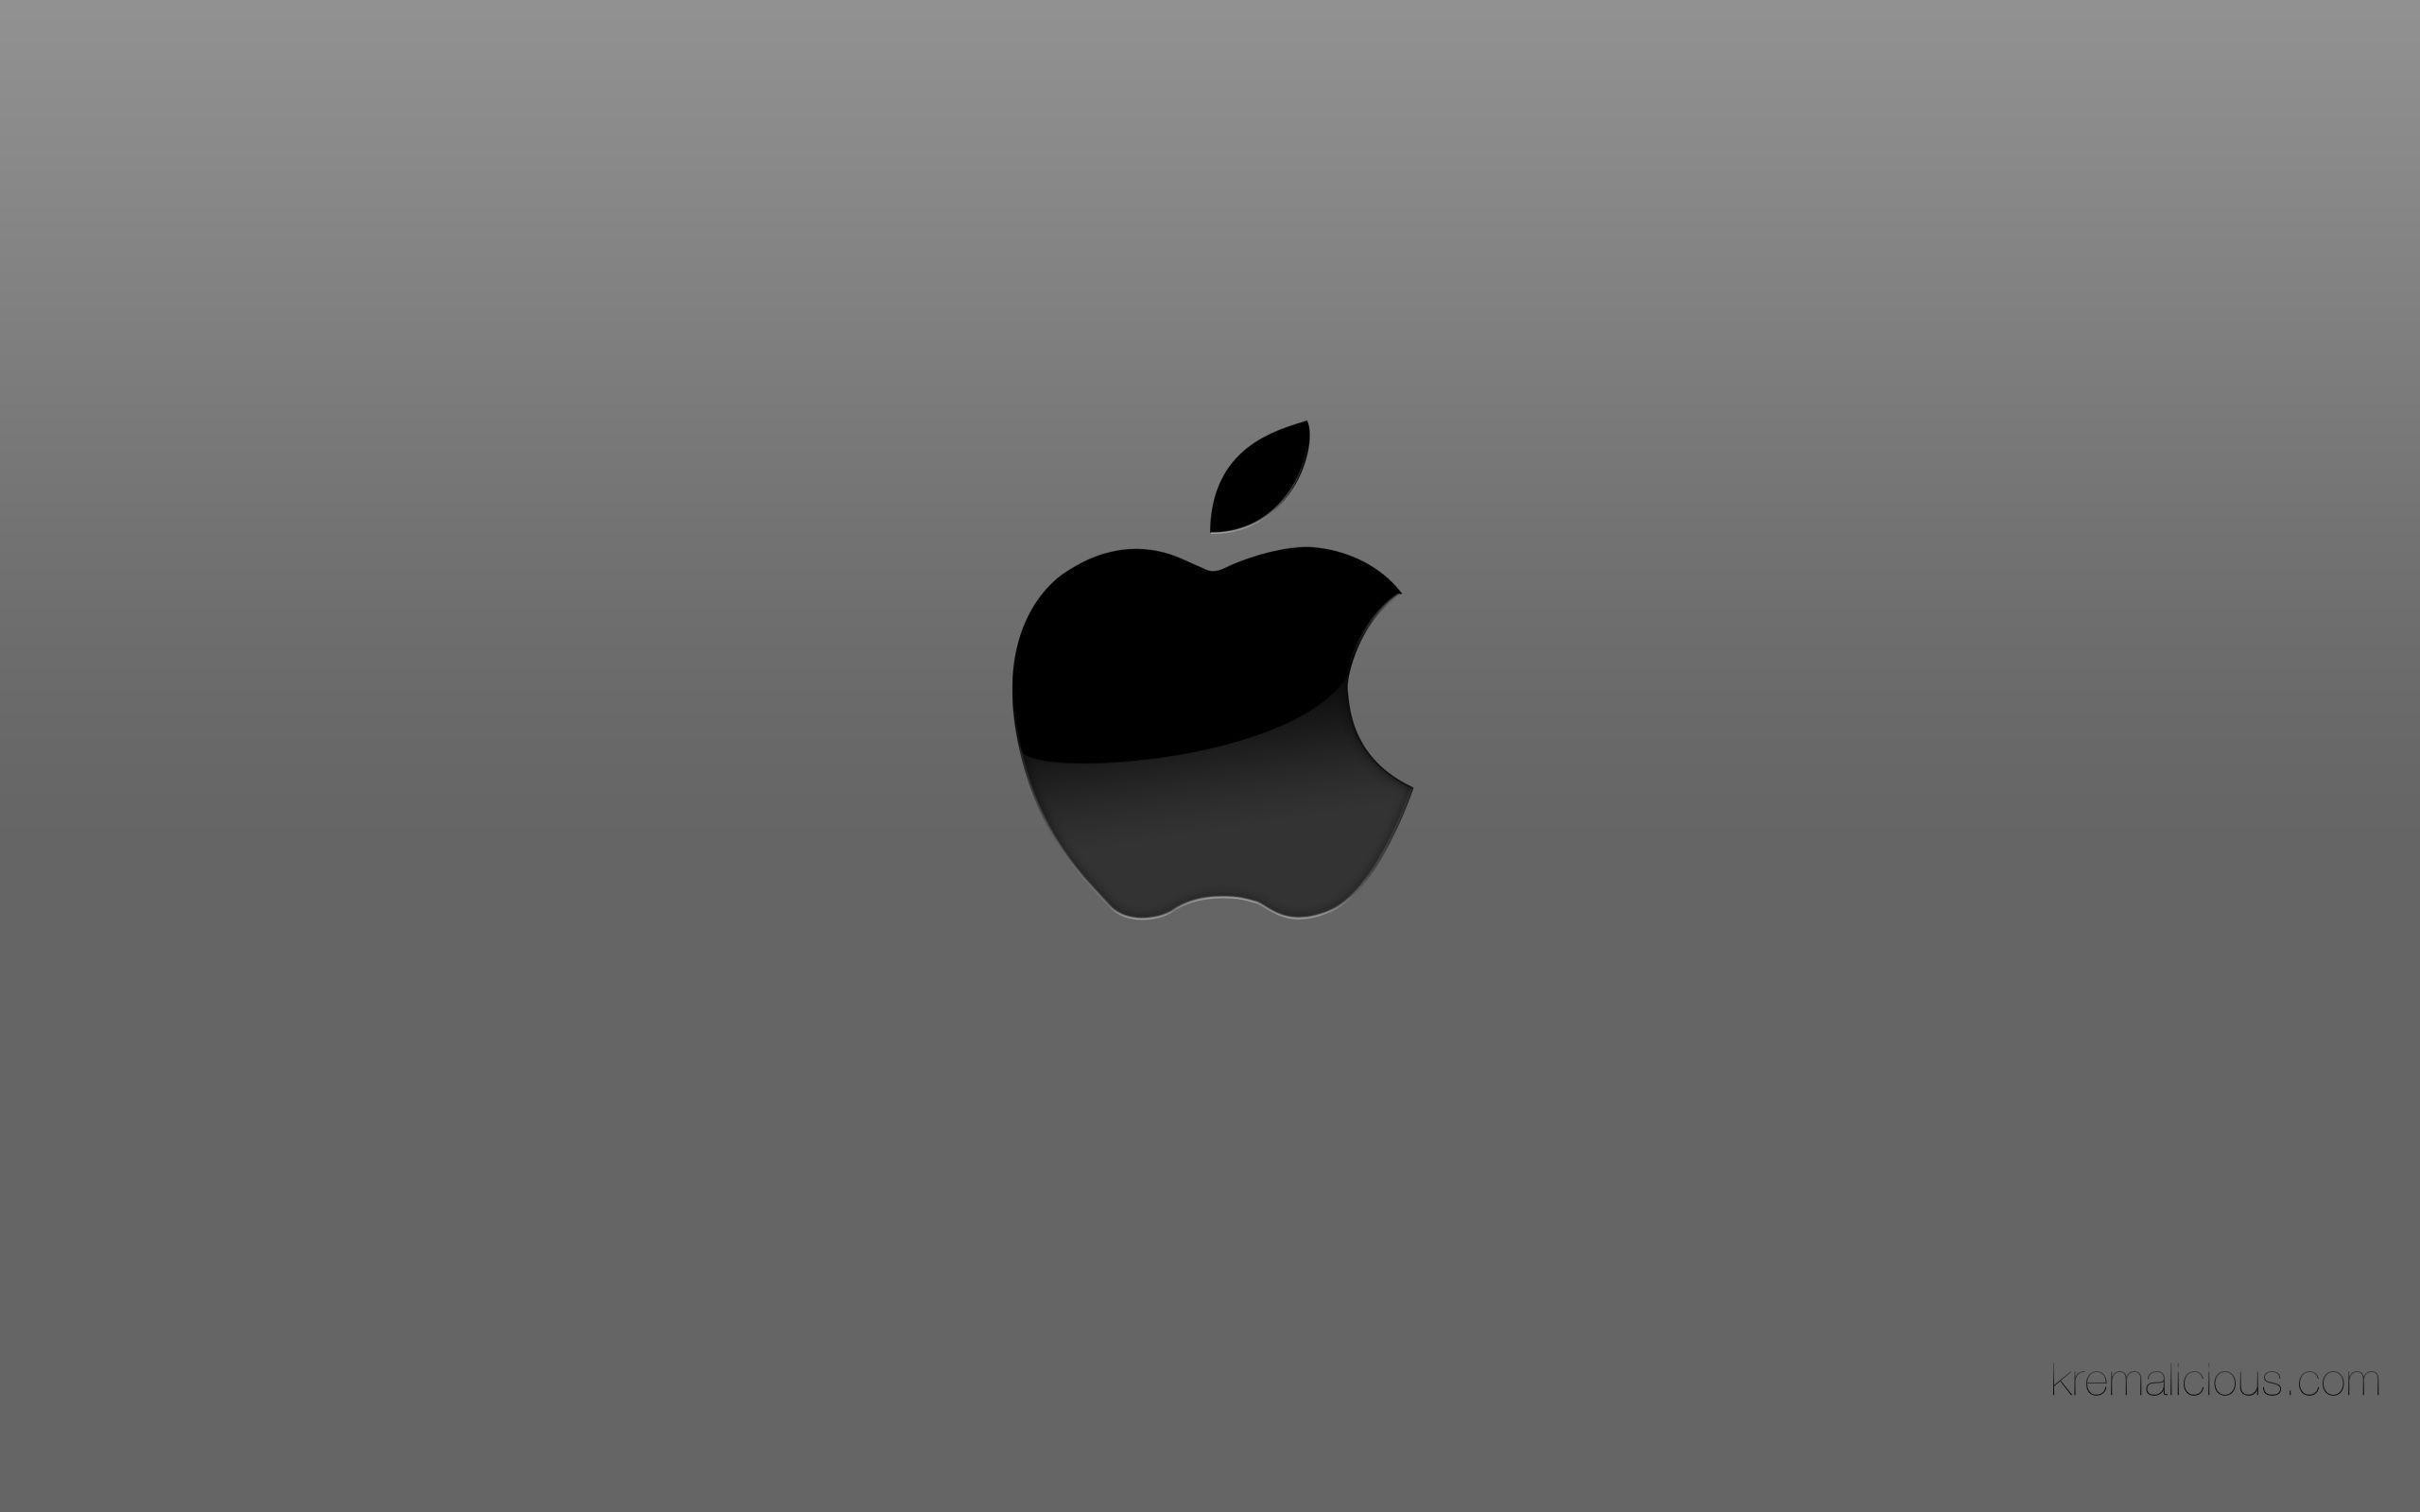 Apple Logo Hd Wallpapers For Iphone 1920 1080 Apple Logo: Apple Logo HD Wallpaper ·① WallpaperTag